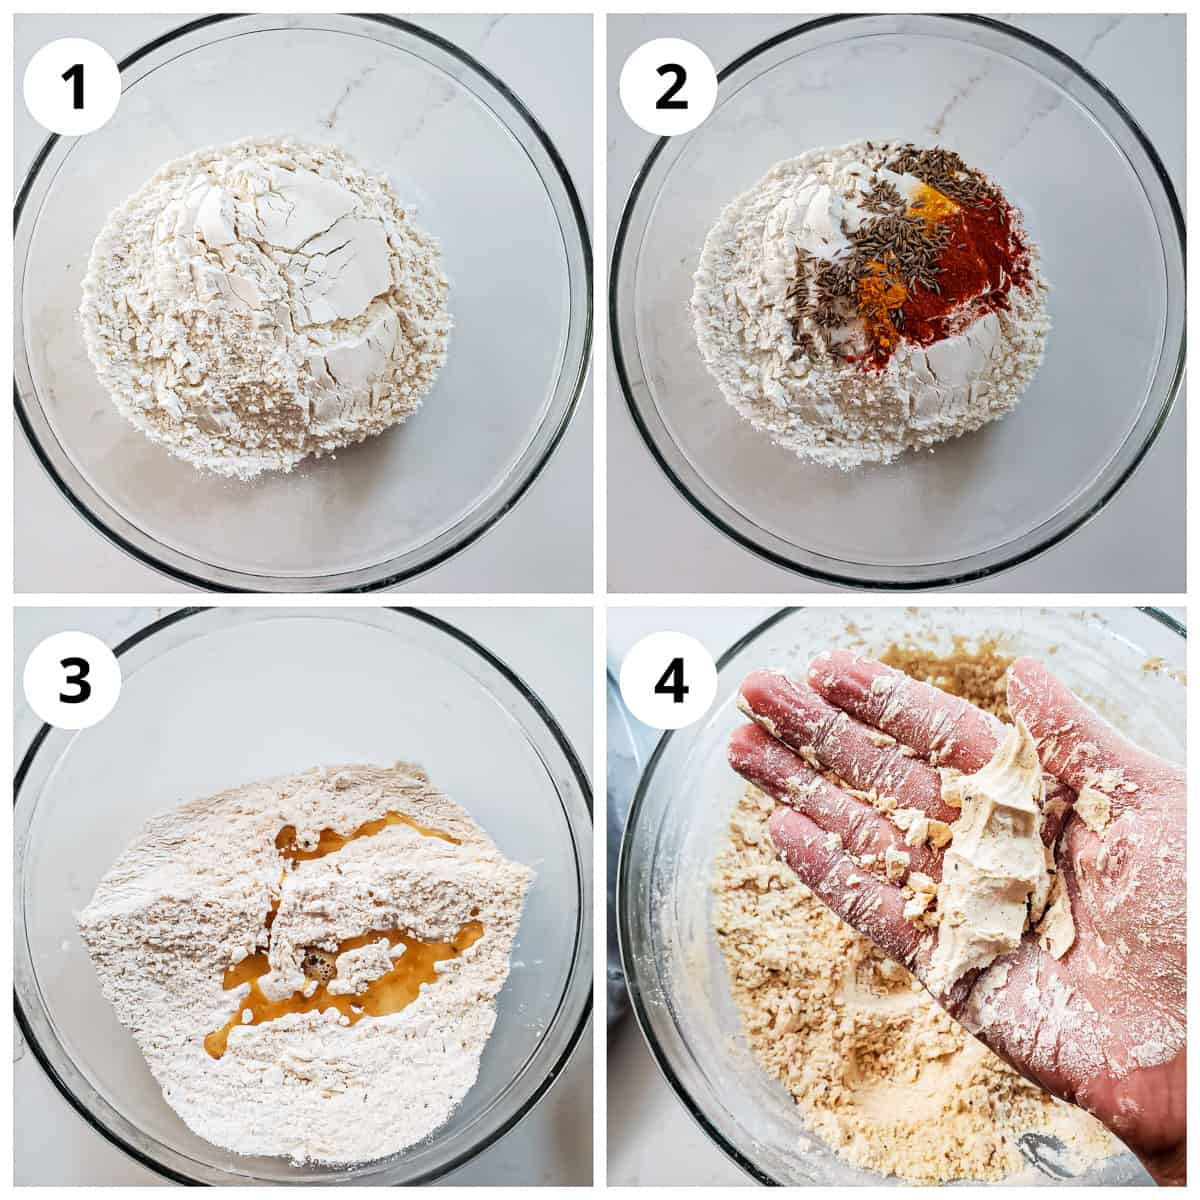 Steps to mix the flour, spices and ghee to make spicy shankarpali